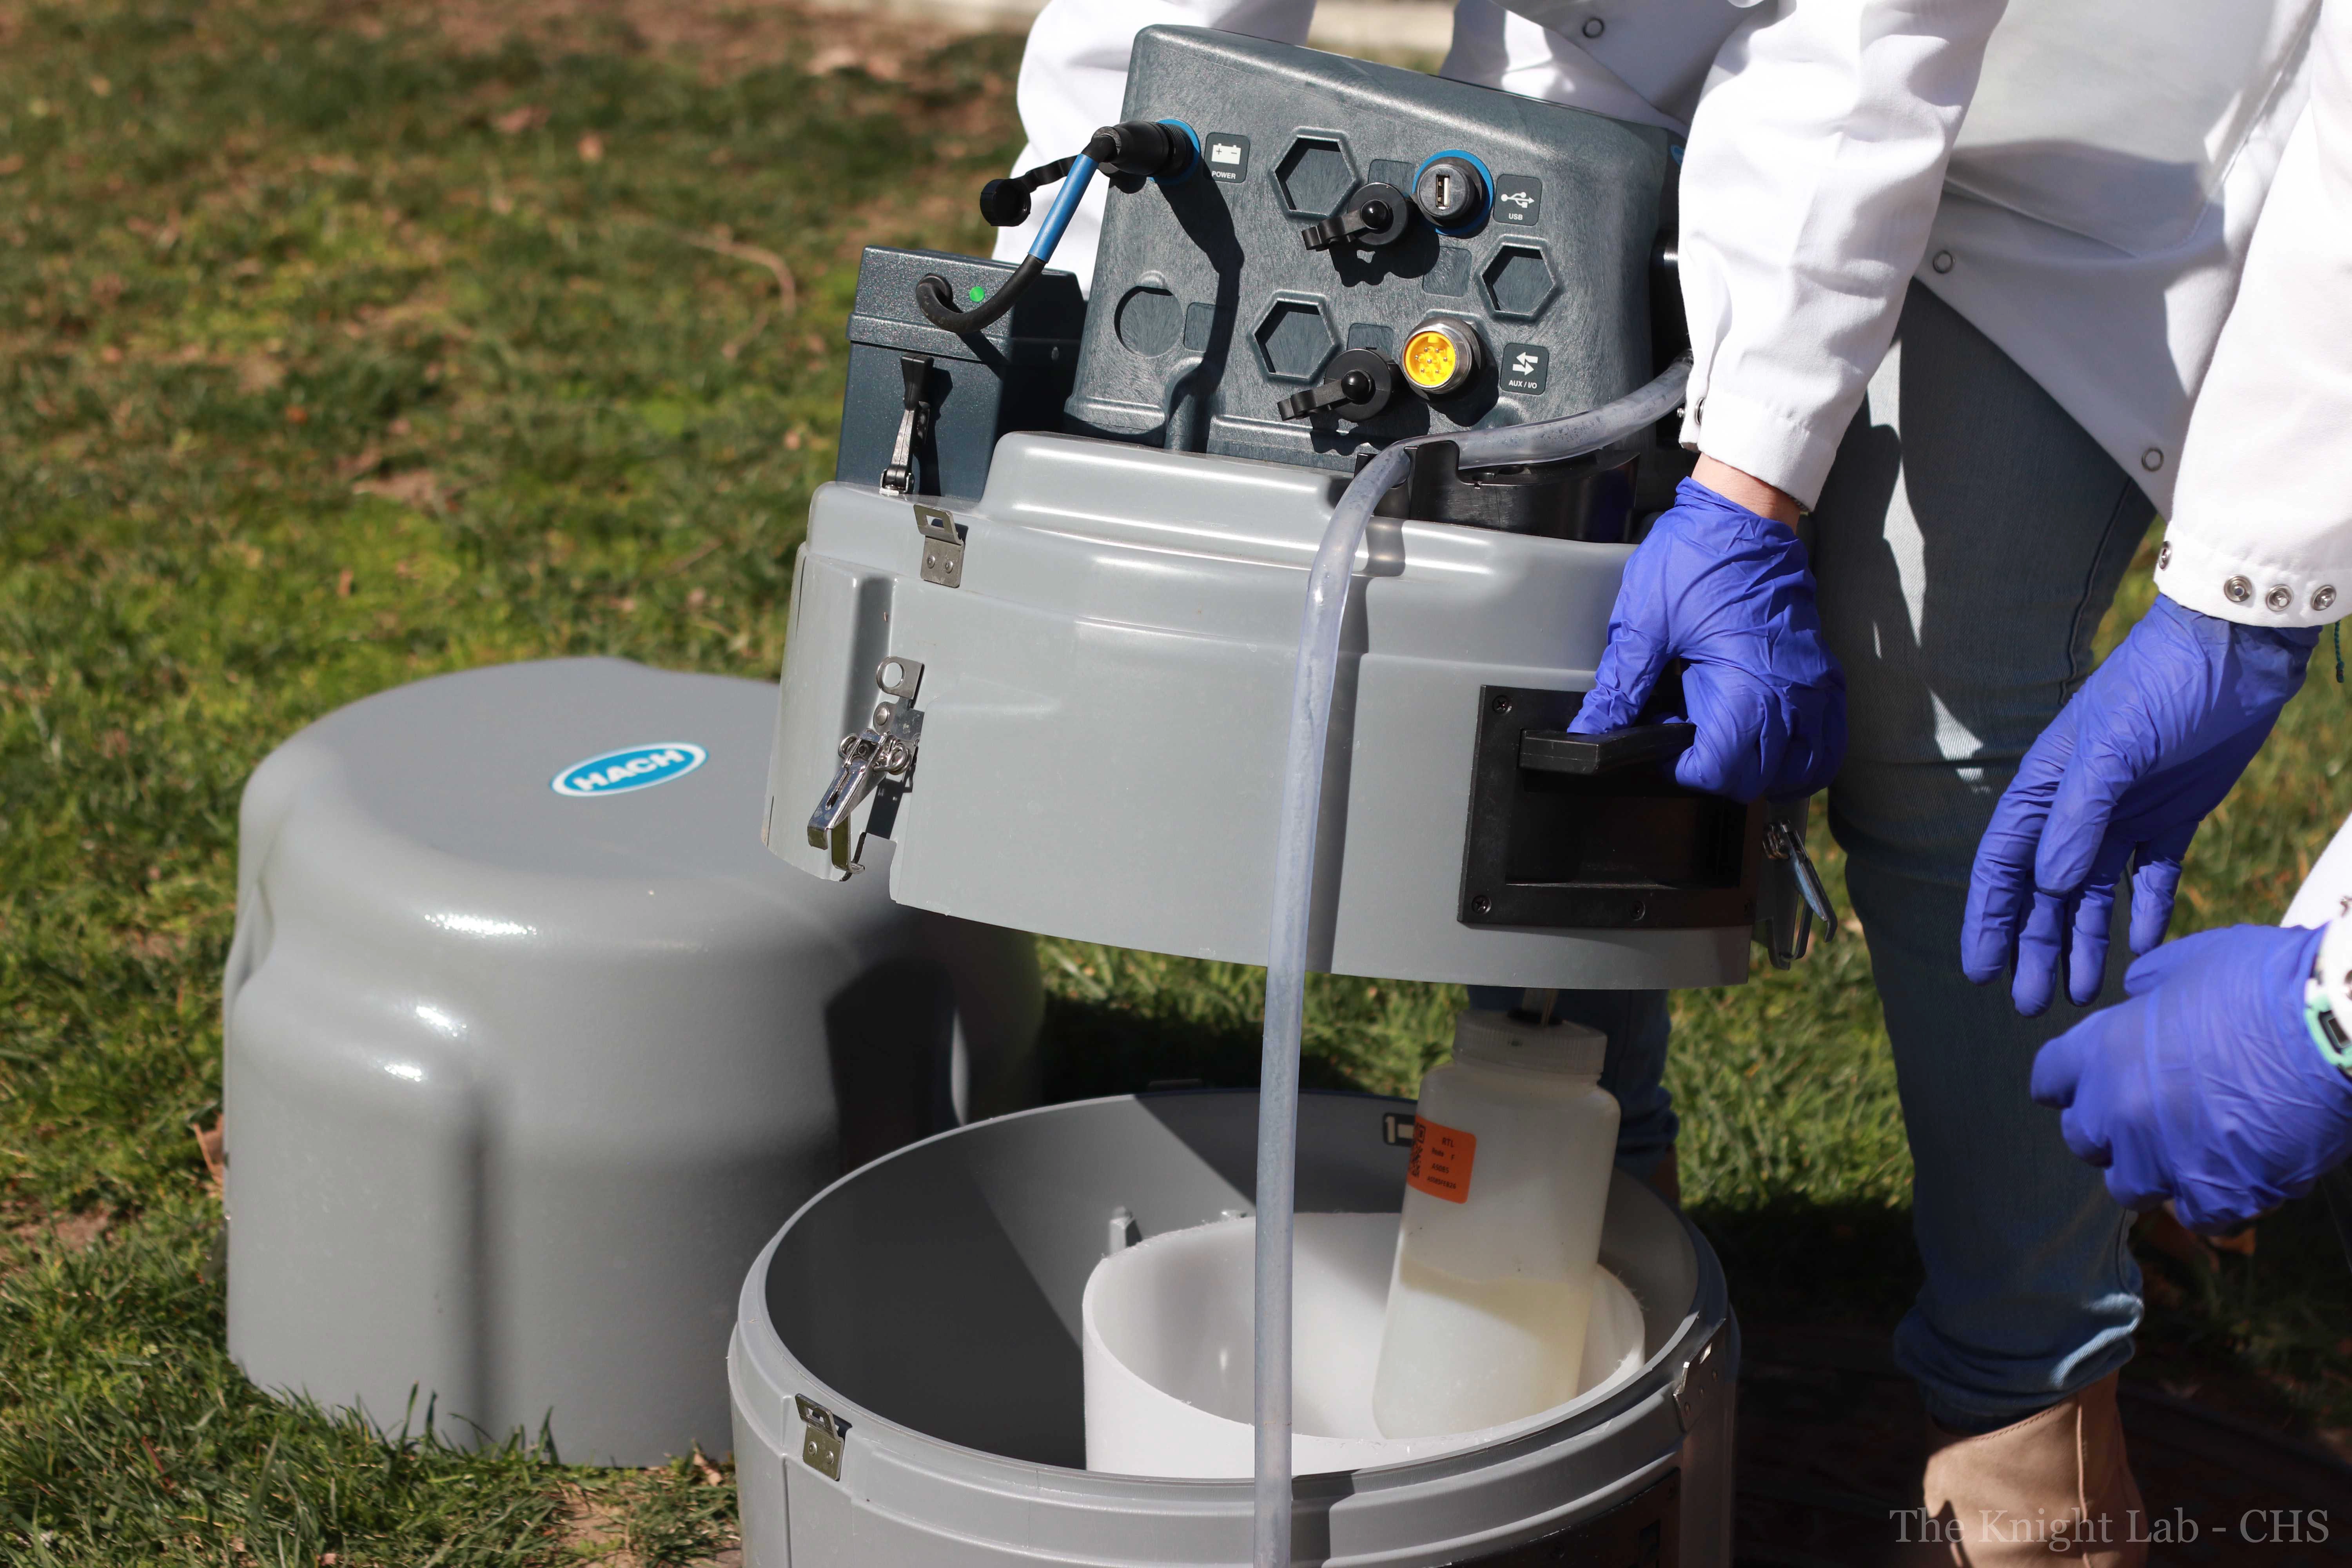 Researchers at UCSD prepare a robot sampler that collects wastewater from the university sewage system.